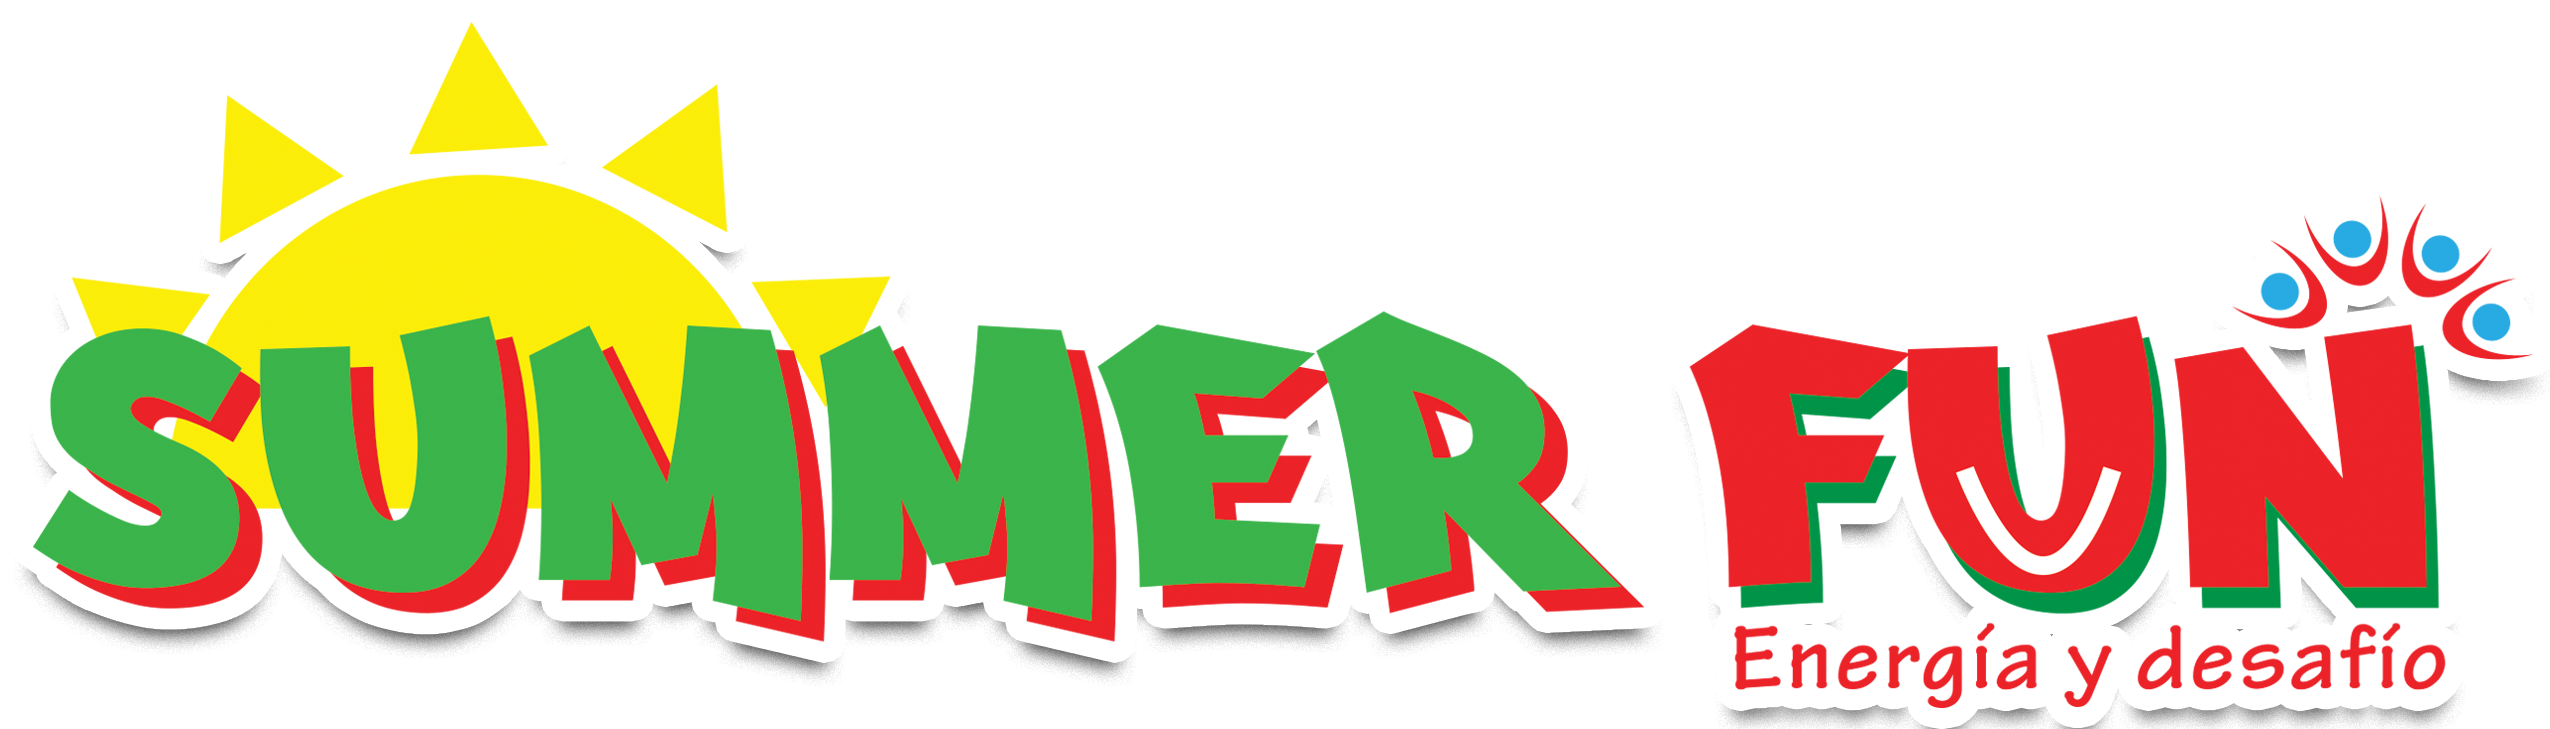 Summer fun logo